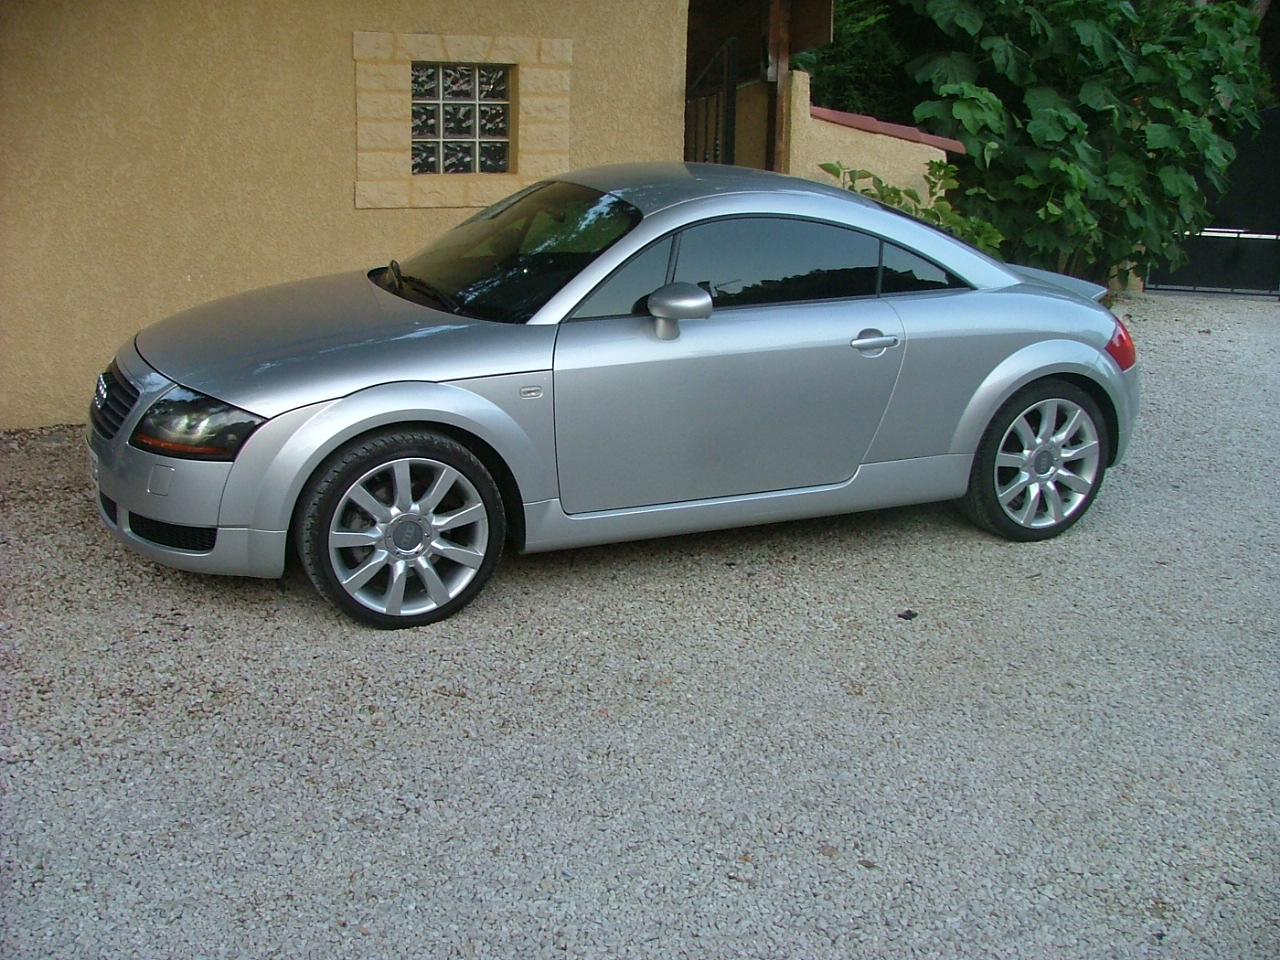 audi tt gris clair coupe 15072 audi tt mk1 pakidu91 photos club. Black Bedroom Furniture Sets. Home Design Ideas